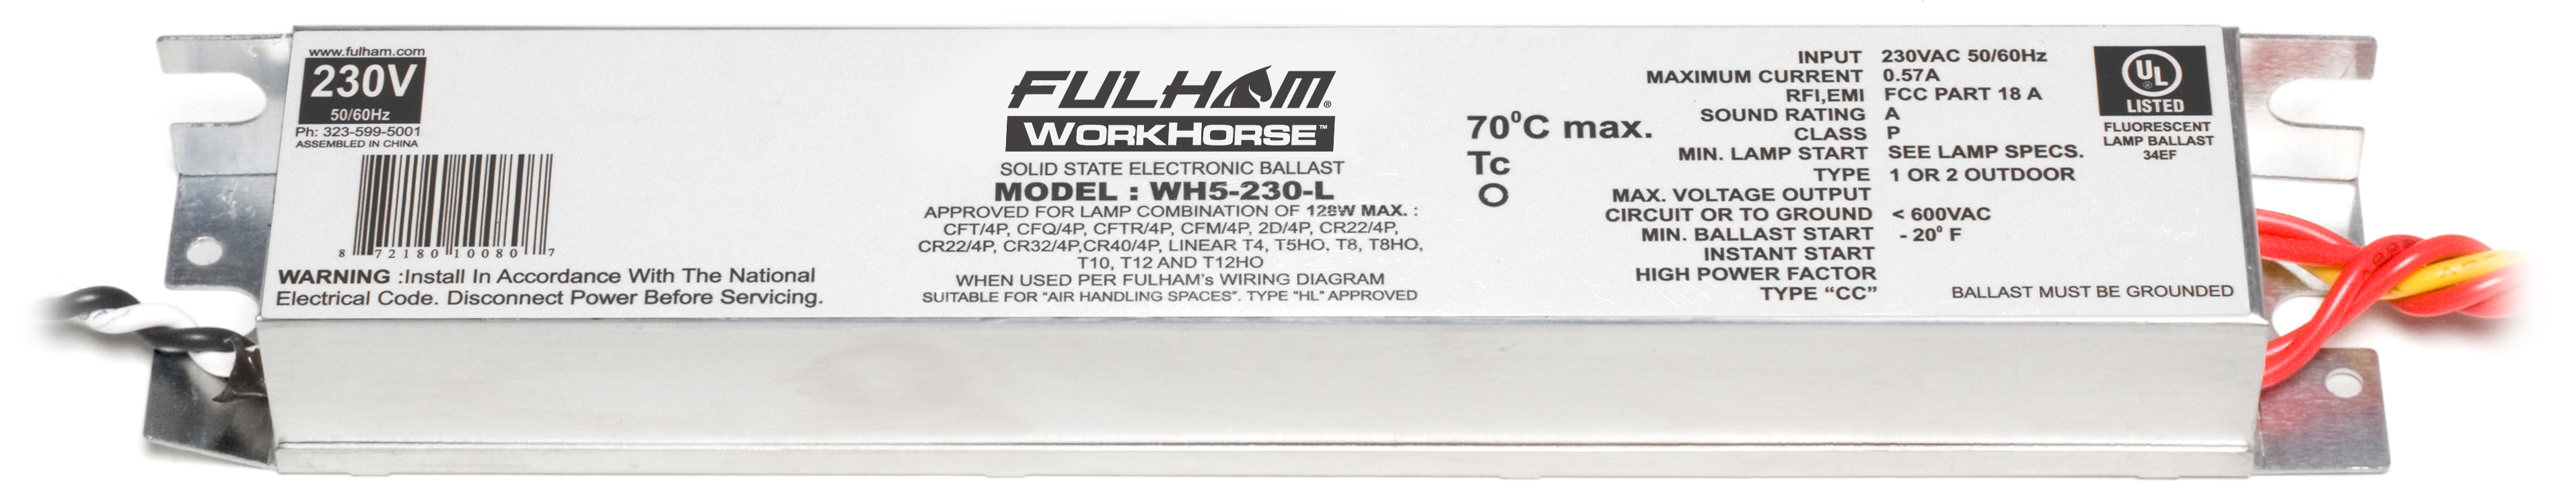 Fulham North Coast Electric 230v Ballast Wiring Diagram Fulhamwh5 230 Lworkhorse 5 Linear Model W